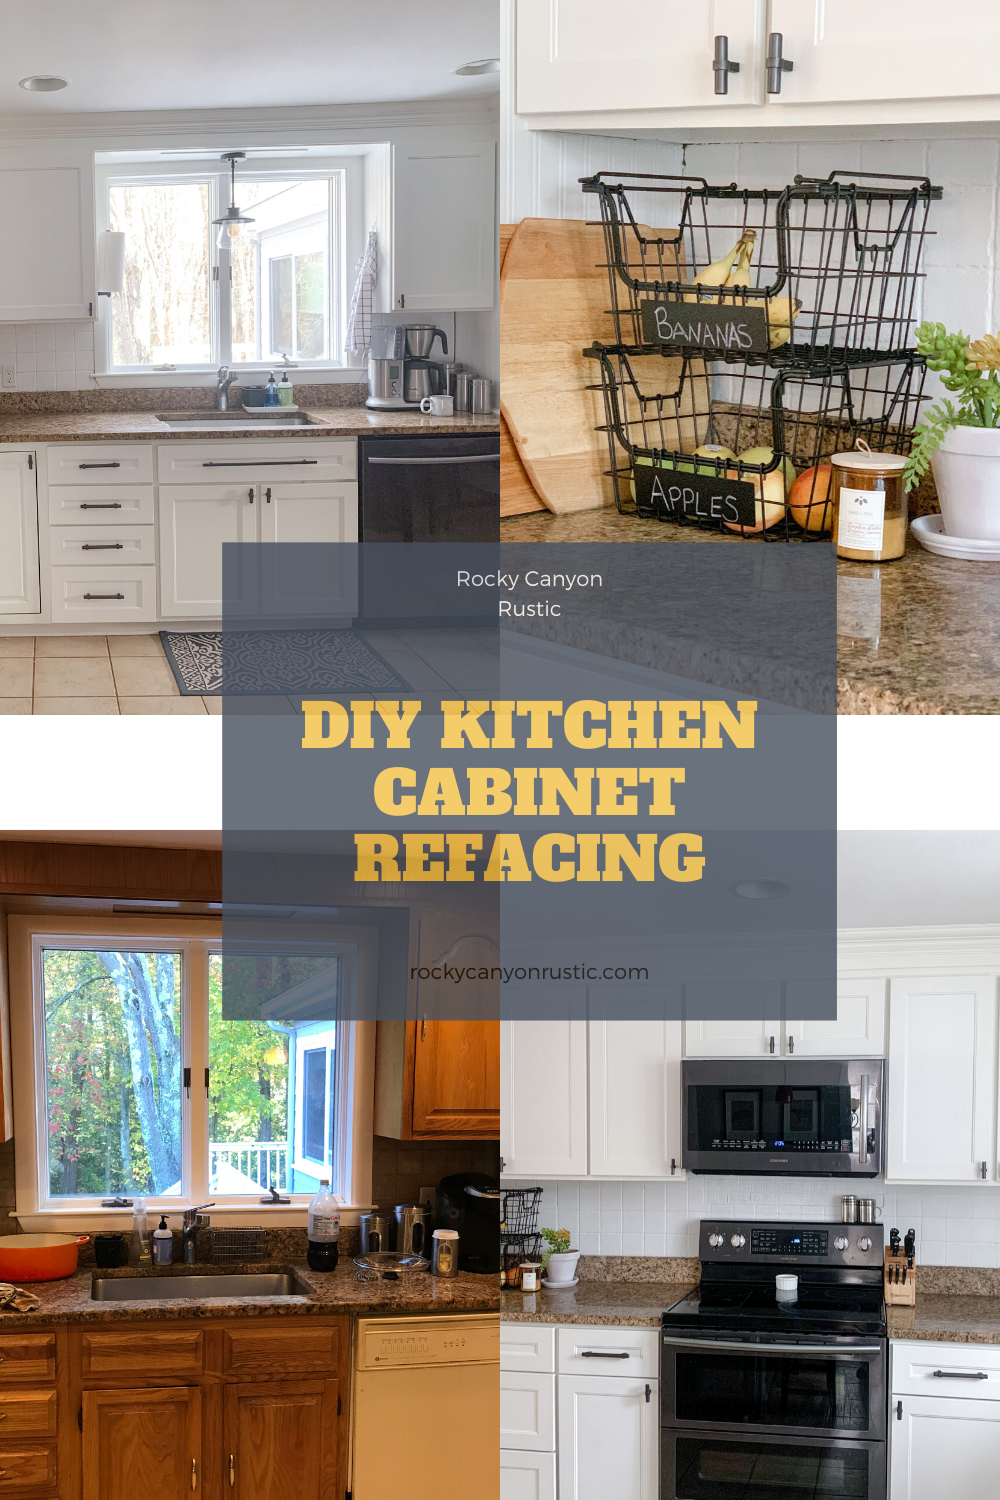 Diy Kitchen Cabinet Refacing In 2020 Kitchen Cabinets On A Budget Diy Kitchen Cabinets Kitchen Cabinets